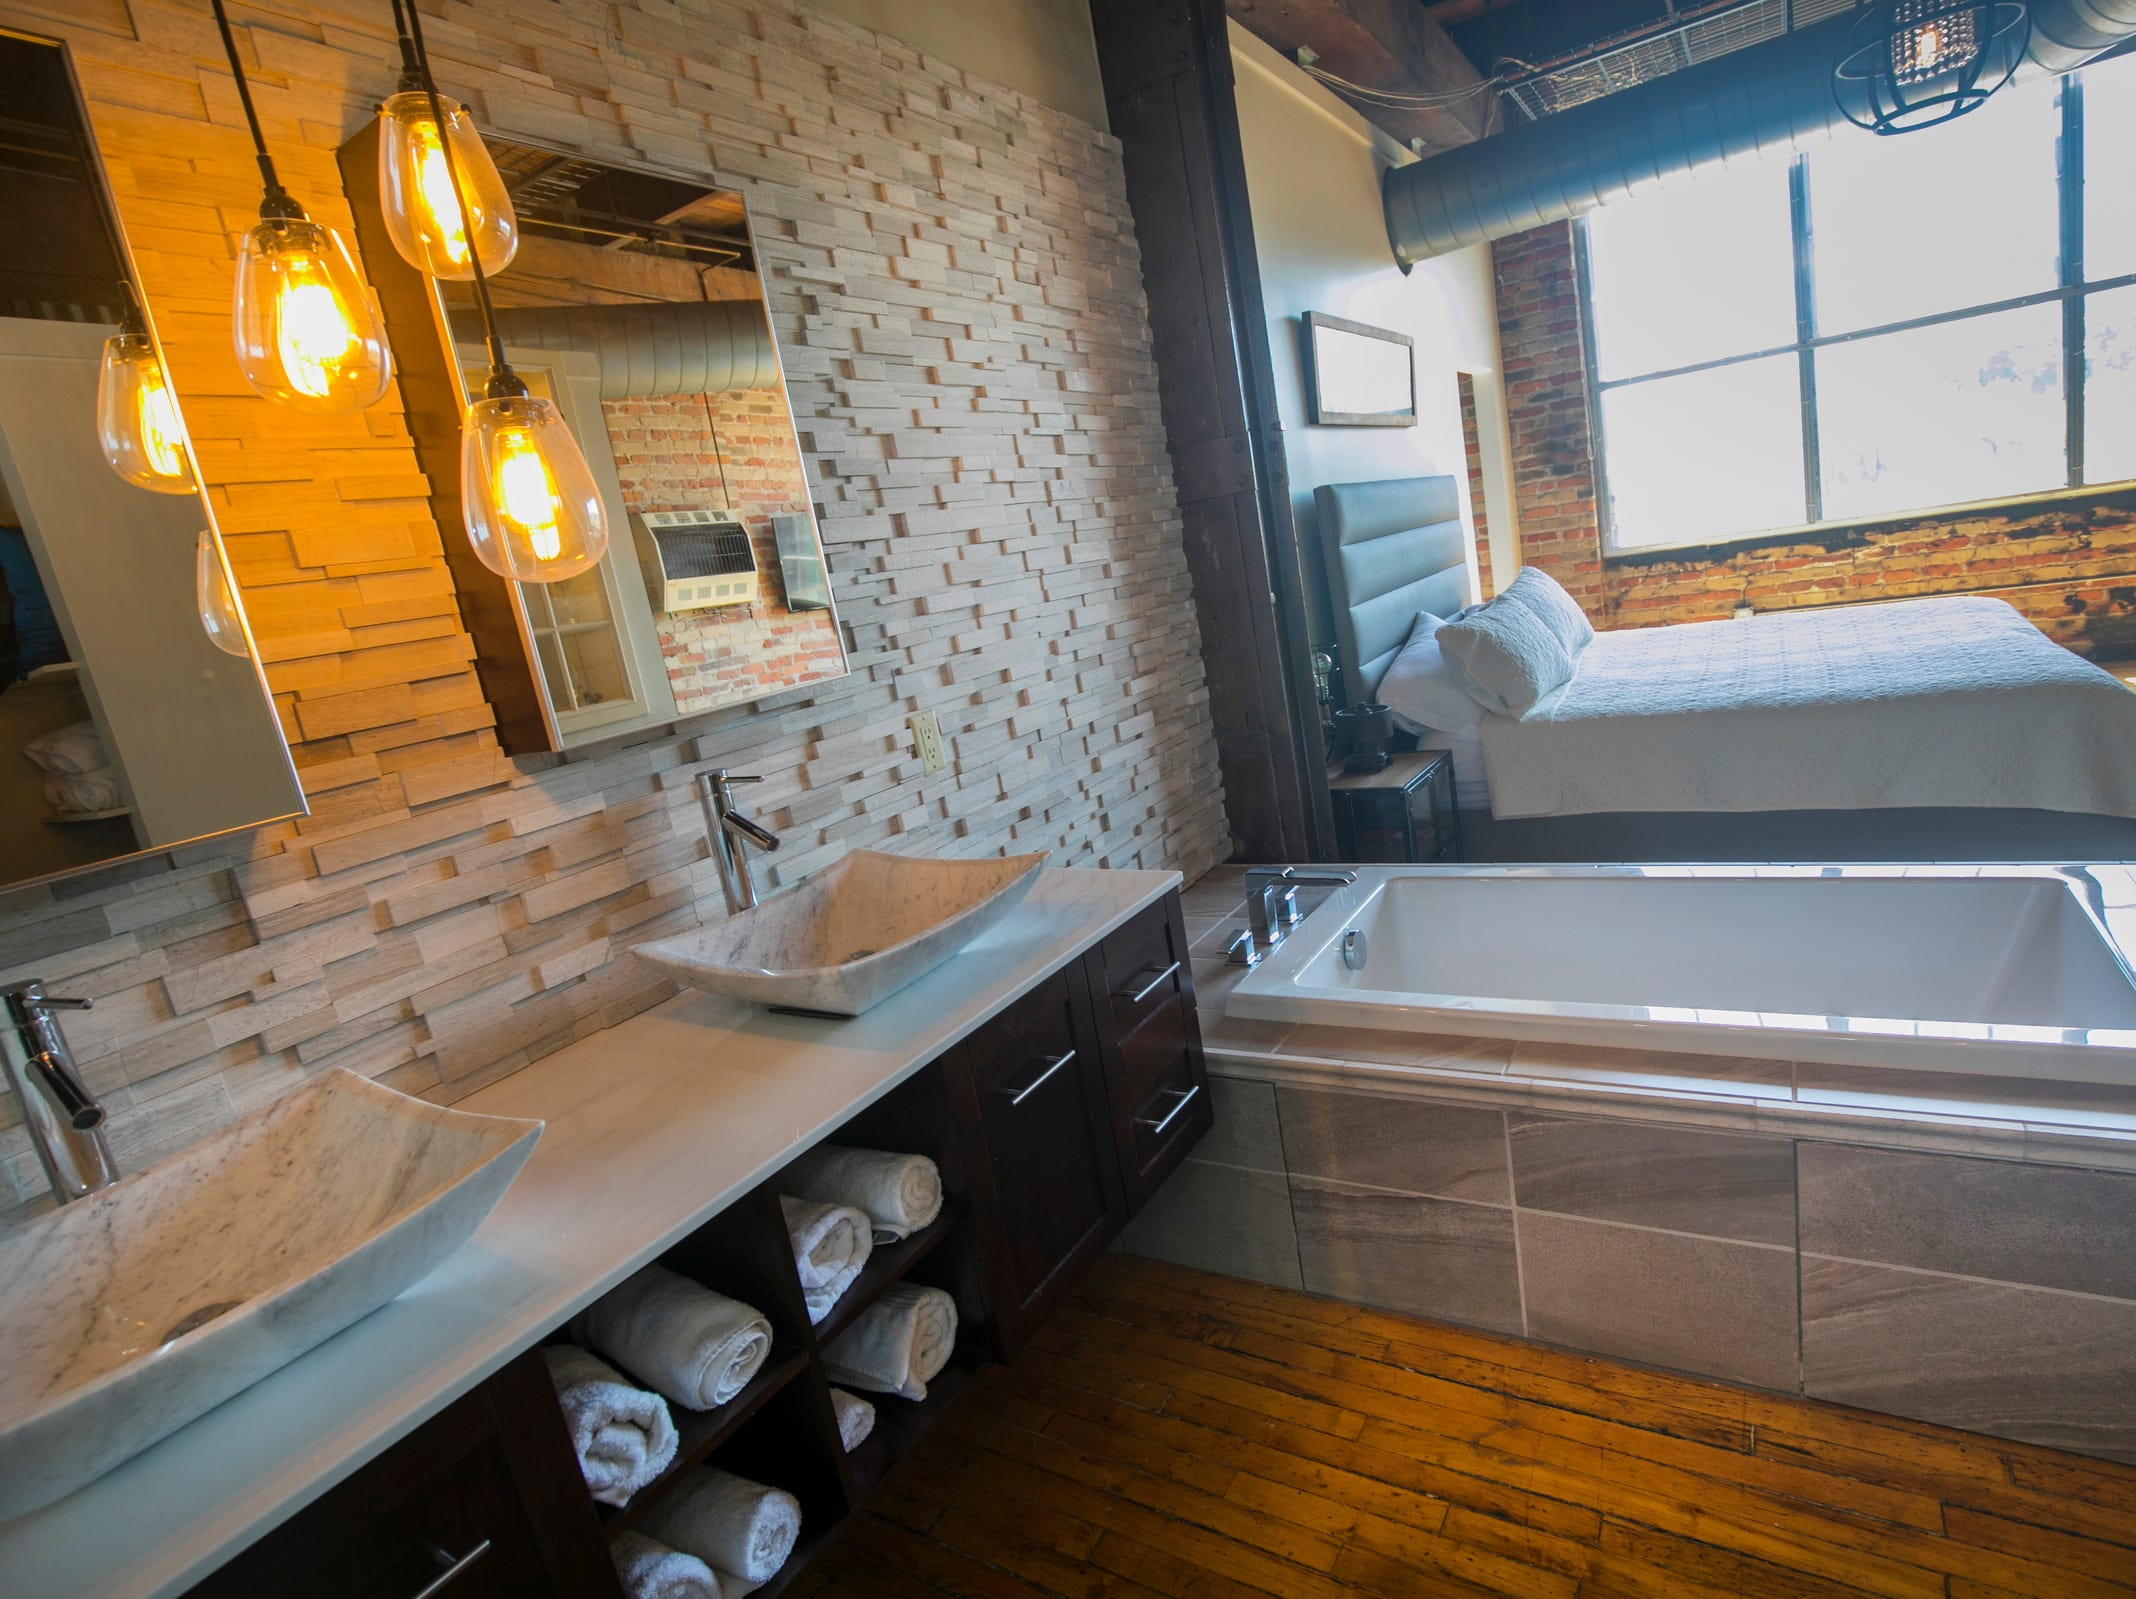 In the large, contemporary owners' suite, the bedroom and bath are combined without walls. There's also a walk-in closet, a wine cooler and a small dishwasher for glasses.